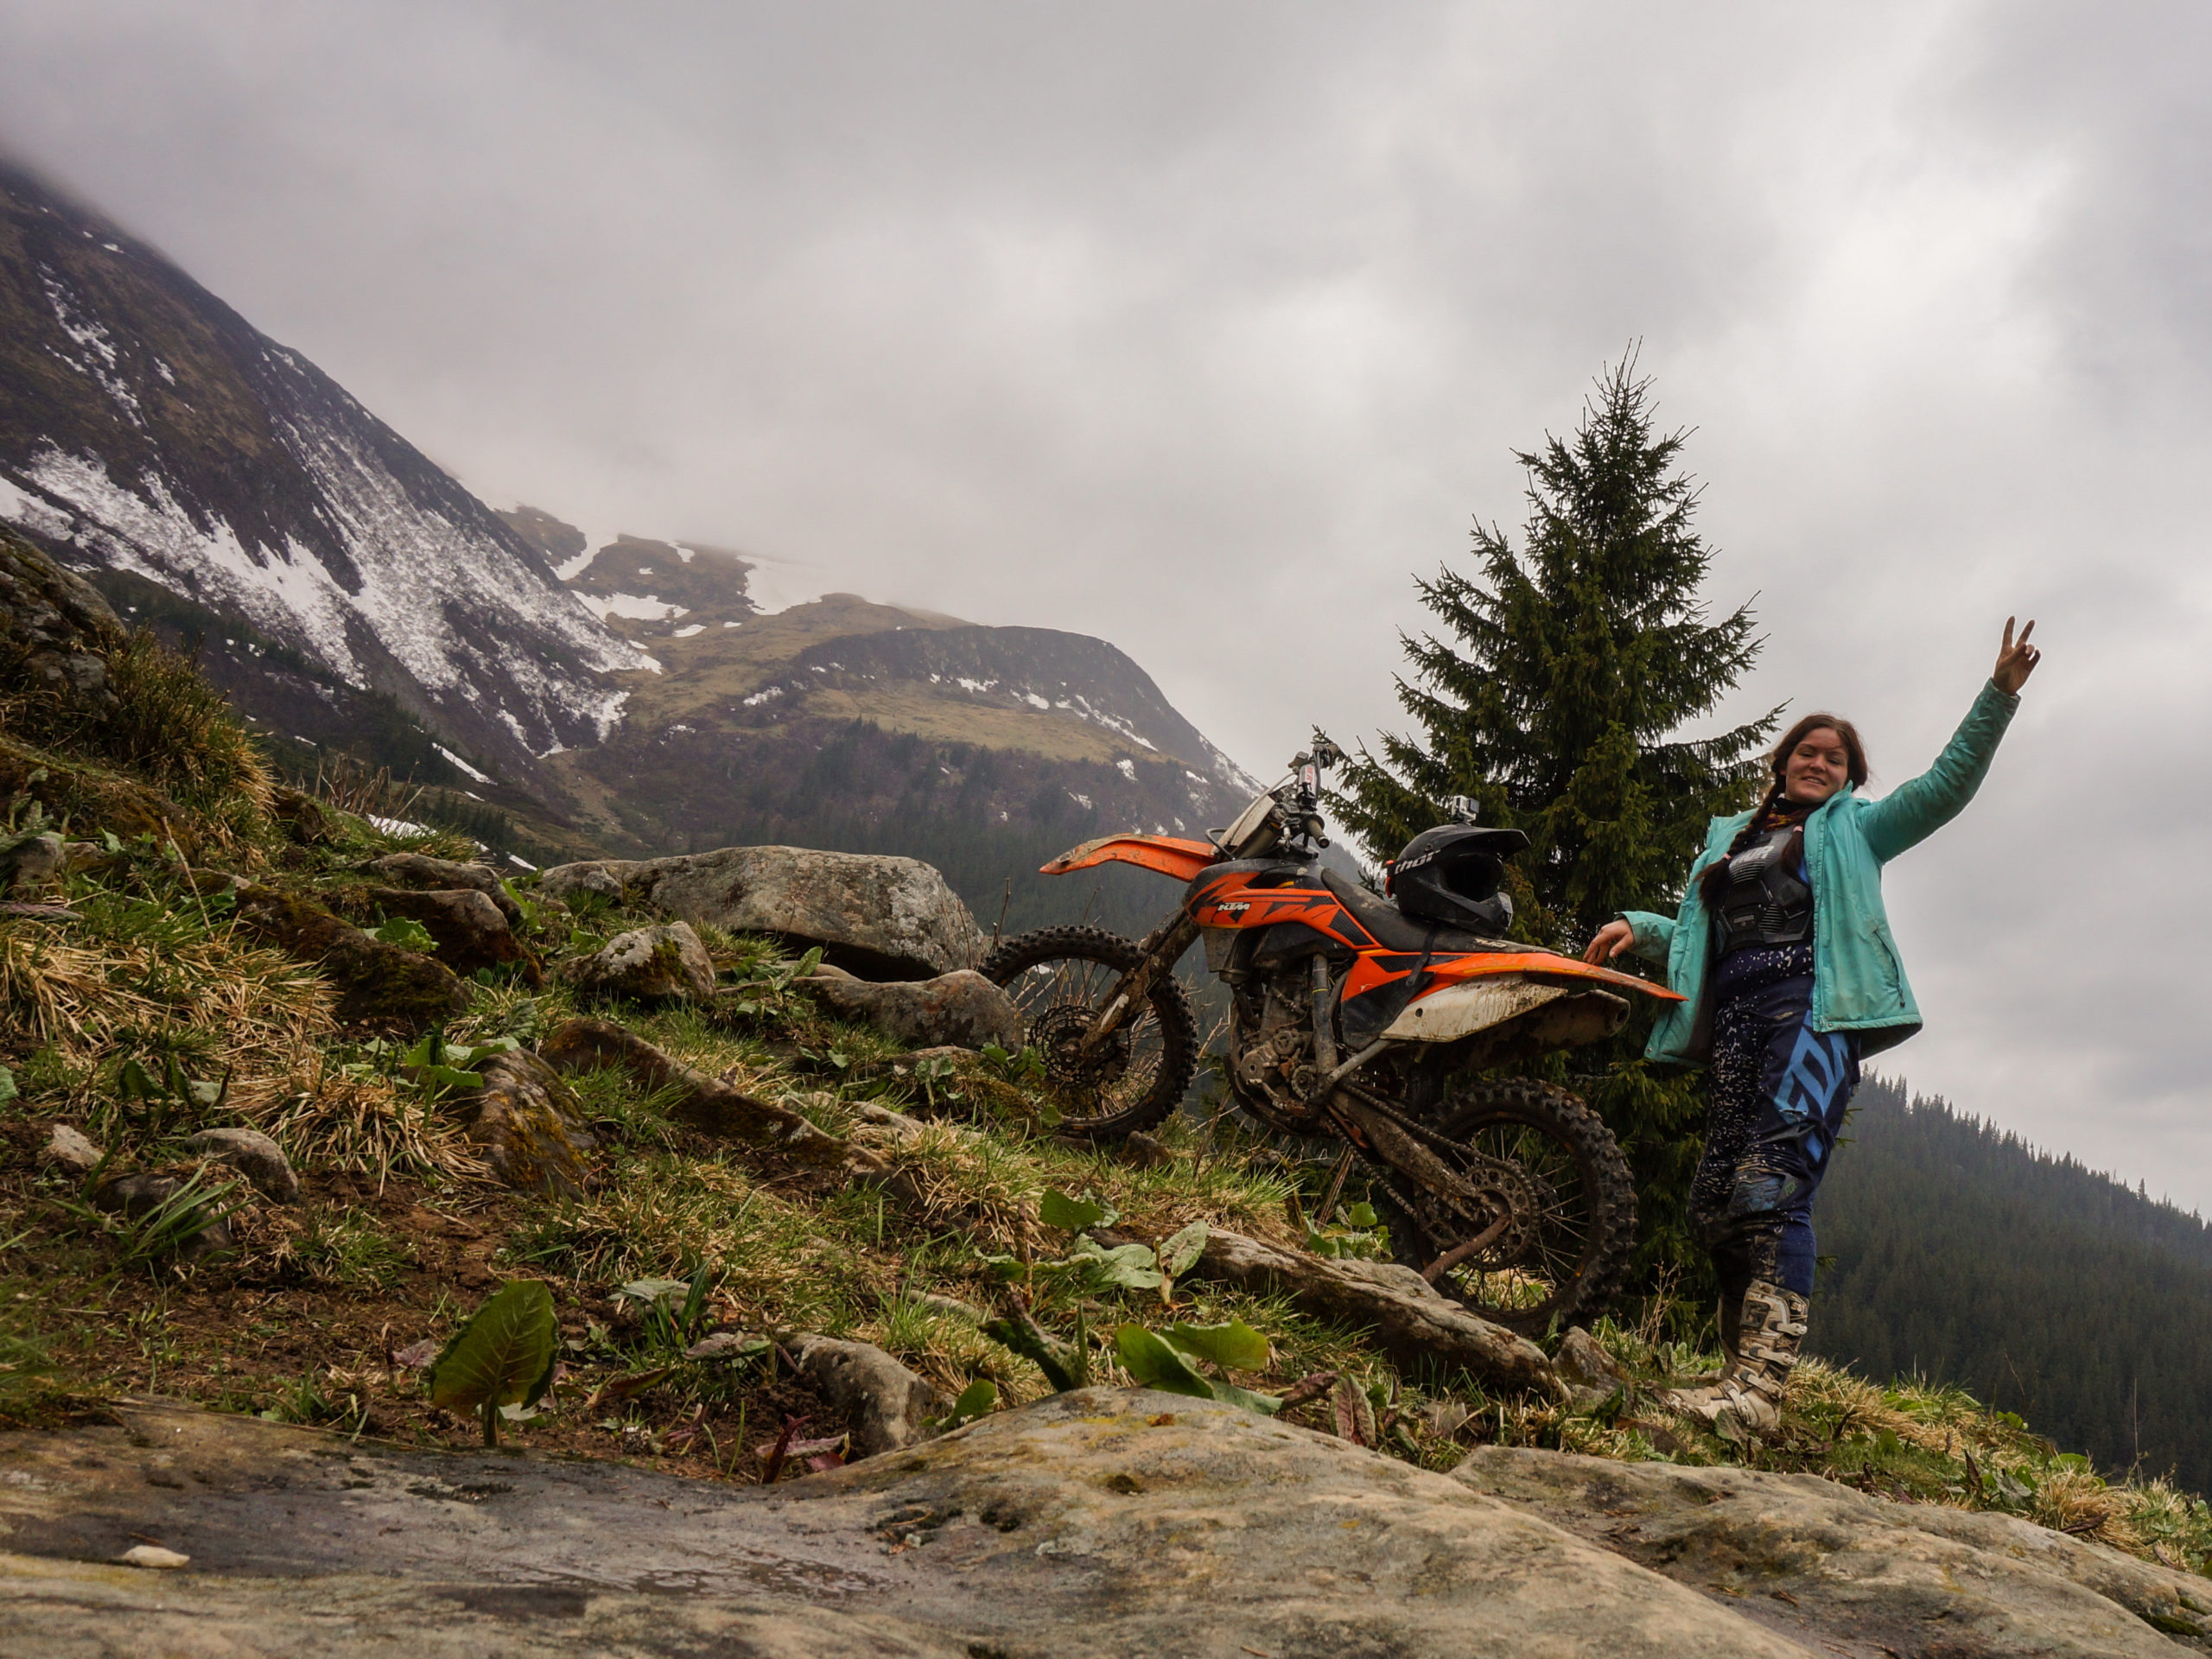 Conquering Carpathians on KTM 250. Or trying to, 2017